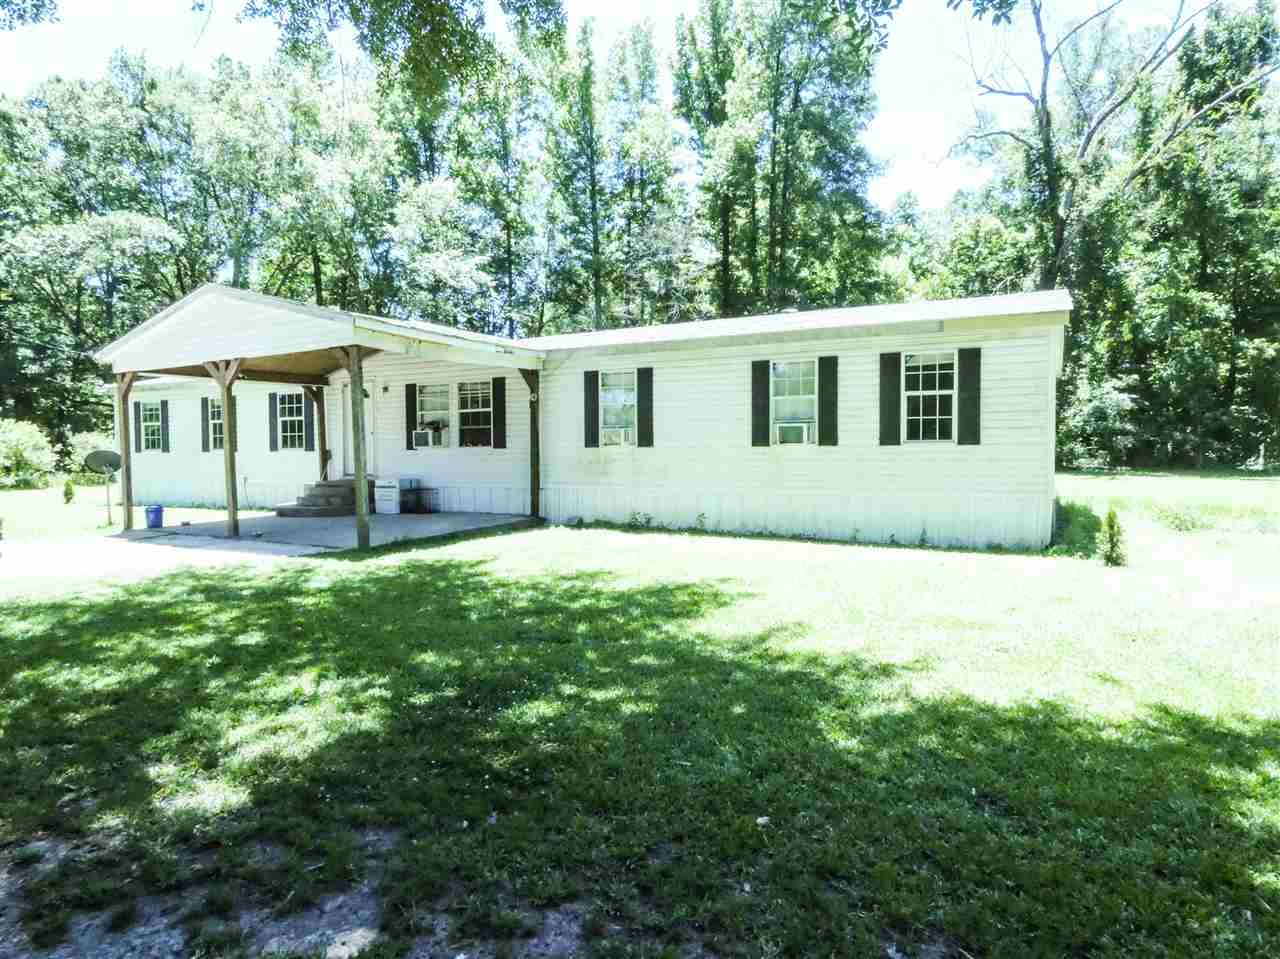 1200 KATIE CLIFF DR, Raymond, MS 39154 - MLS#: 331098